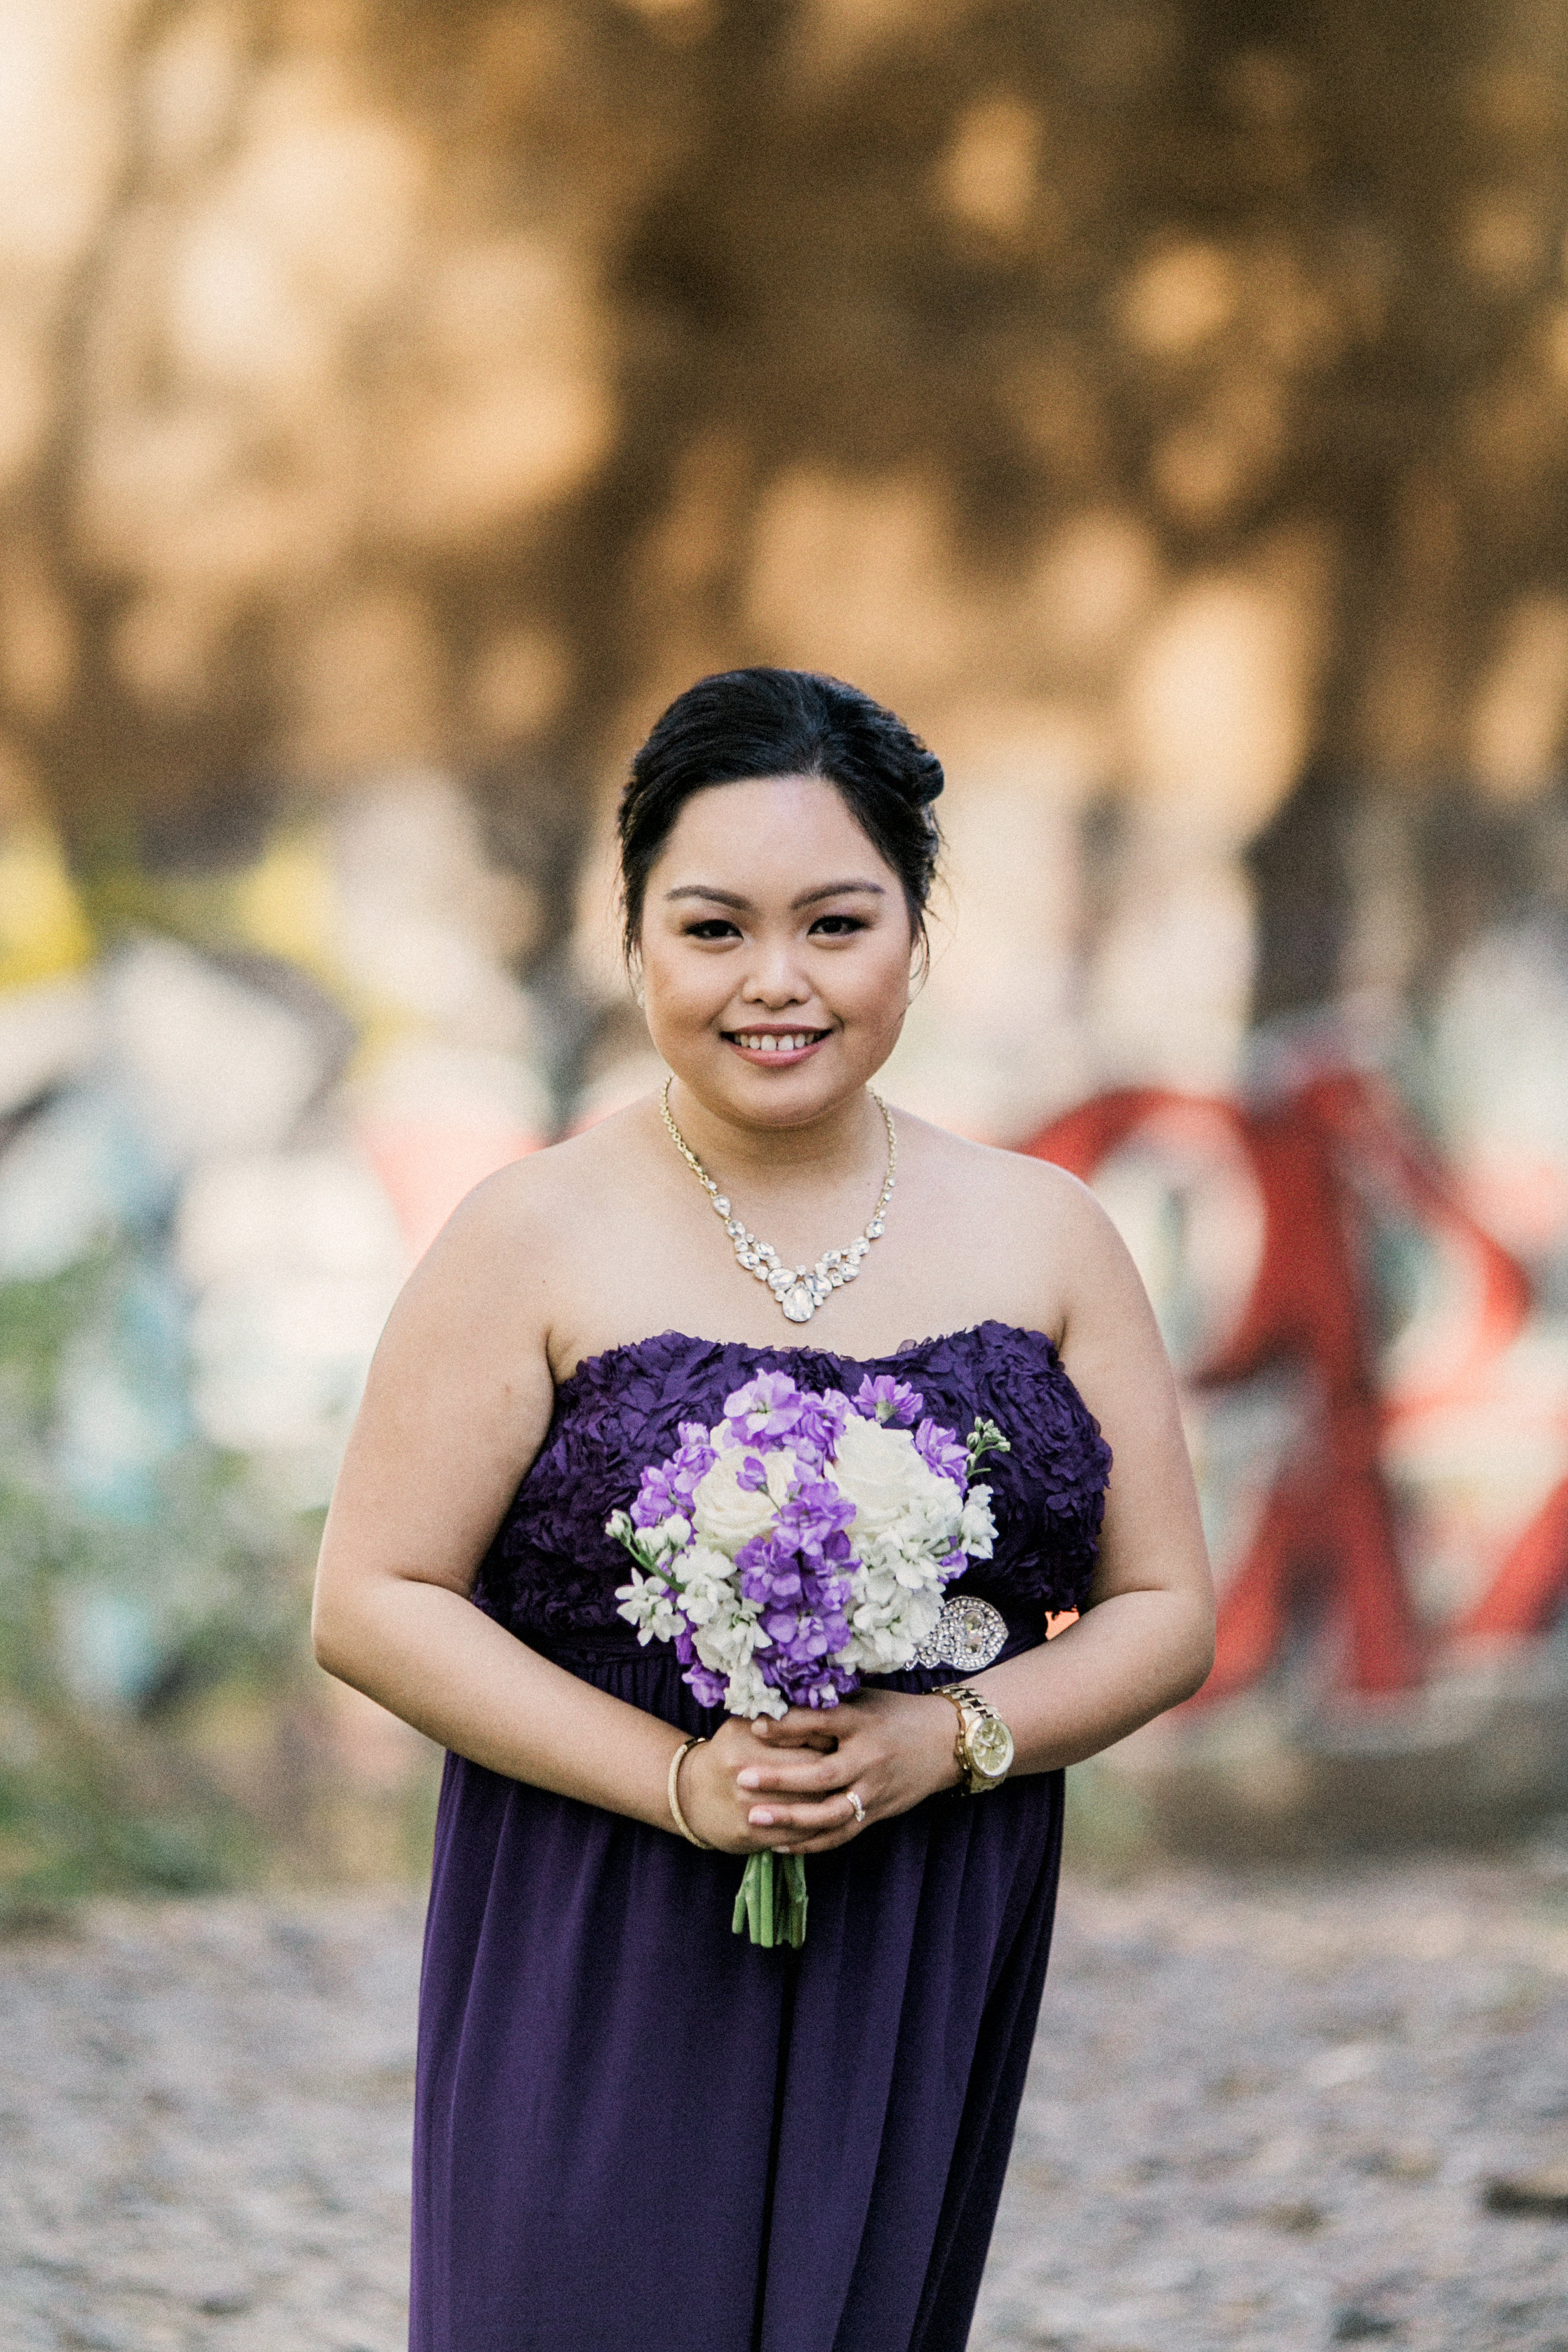 Bridesmaid - Hair by Carmine / Image by BLF Studios